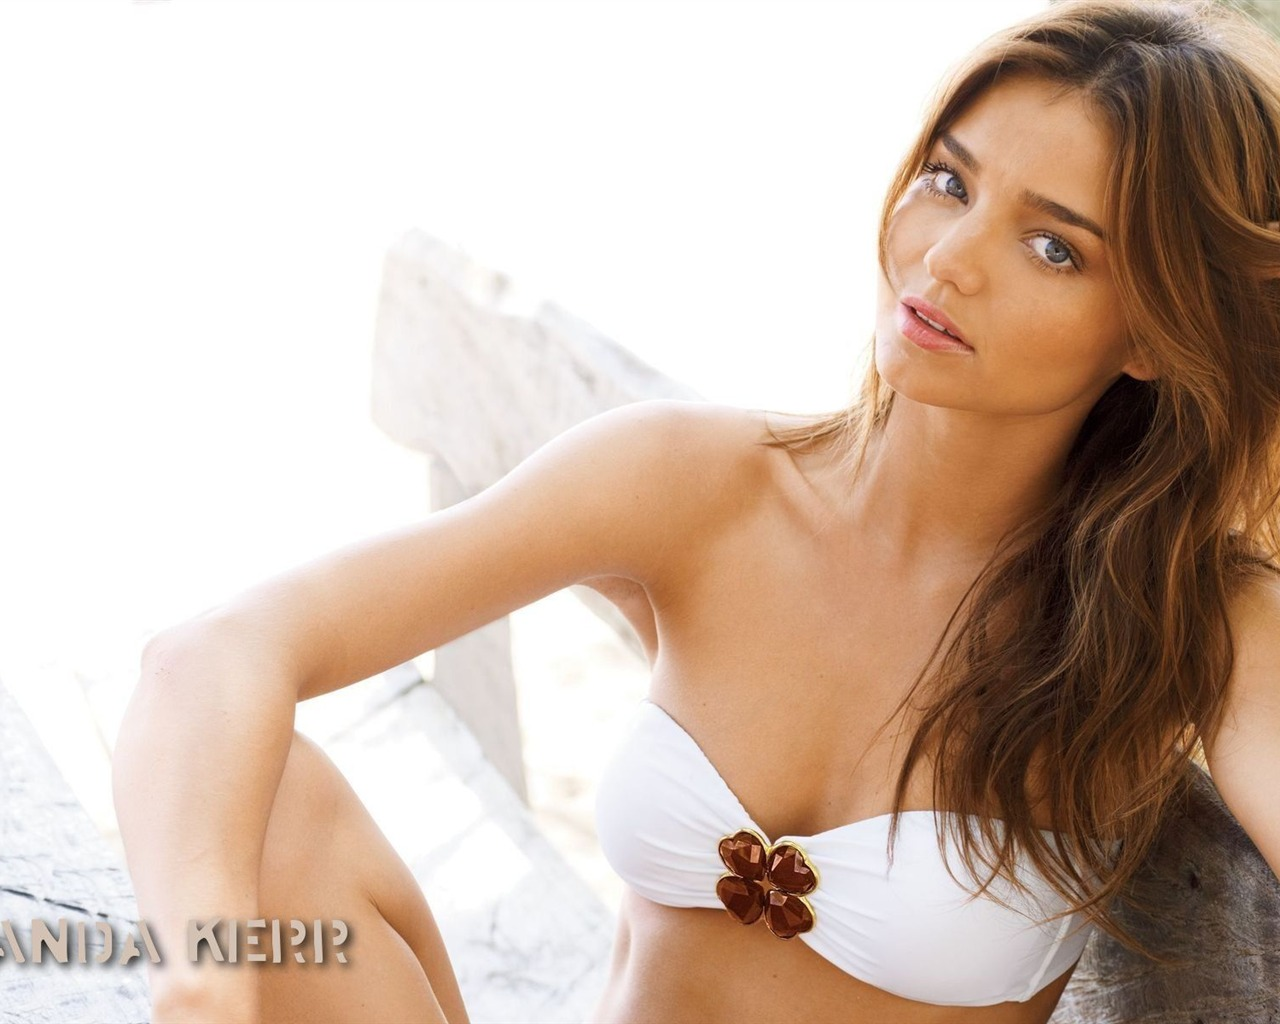 Miranda Kerr #026 - 1280x1024 Wallpapers Pictures Photos Images